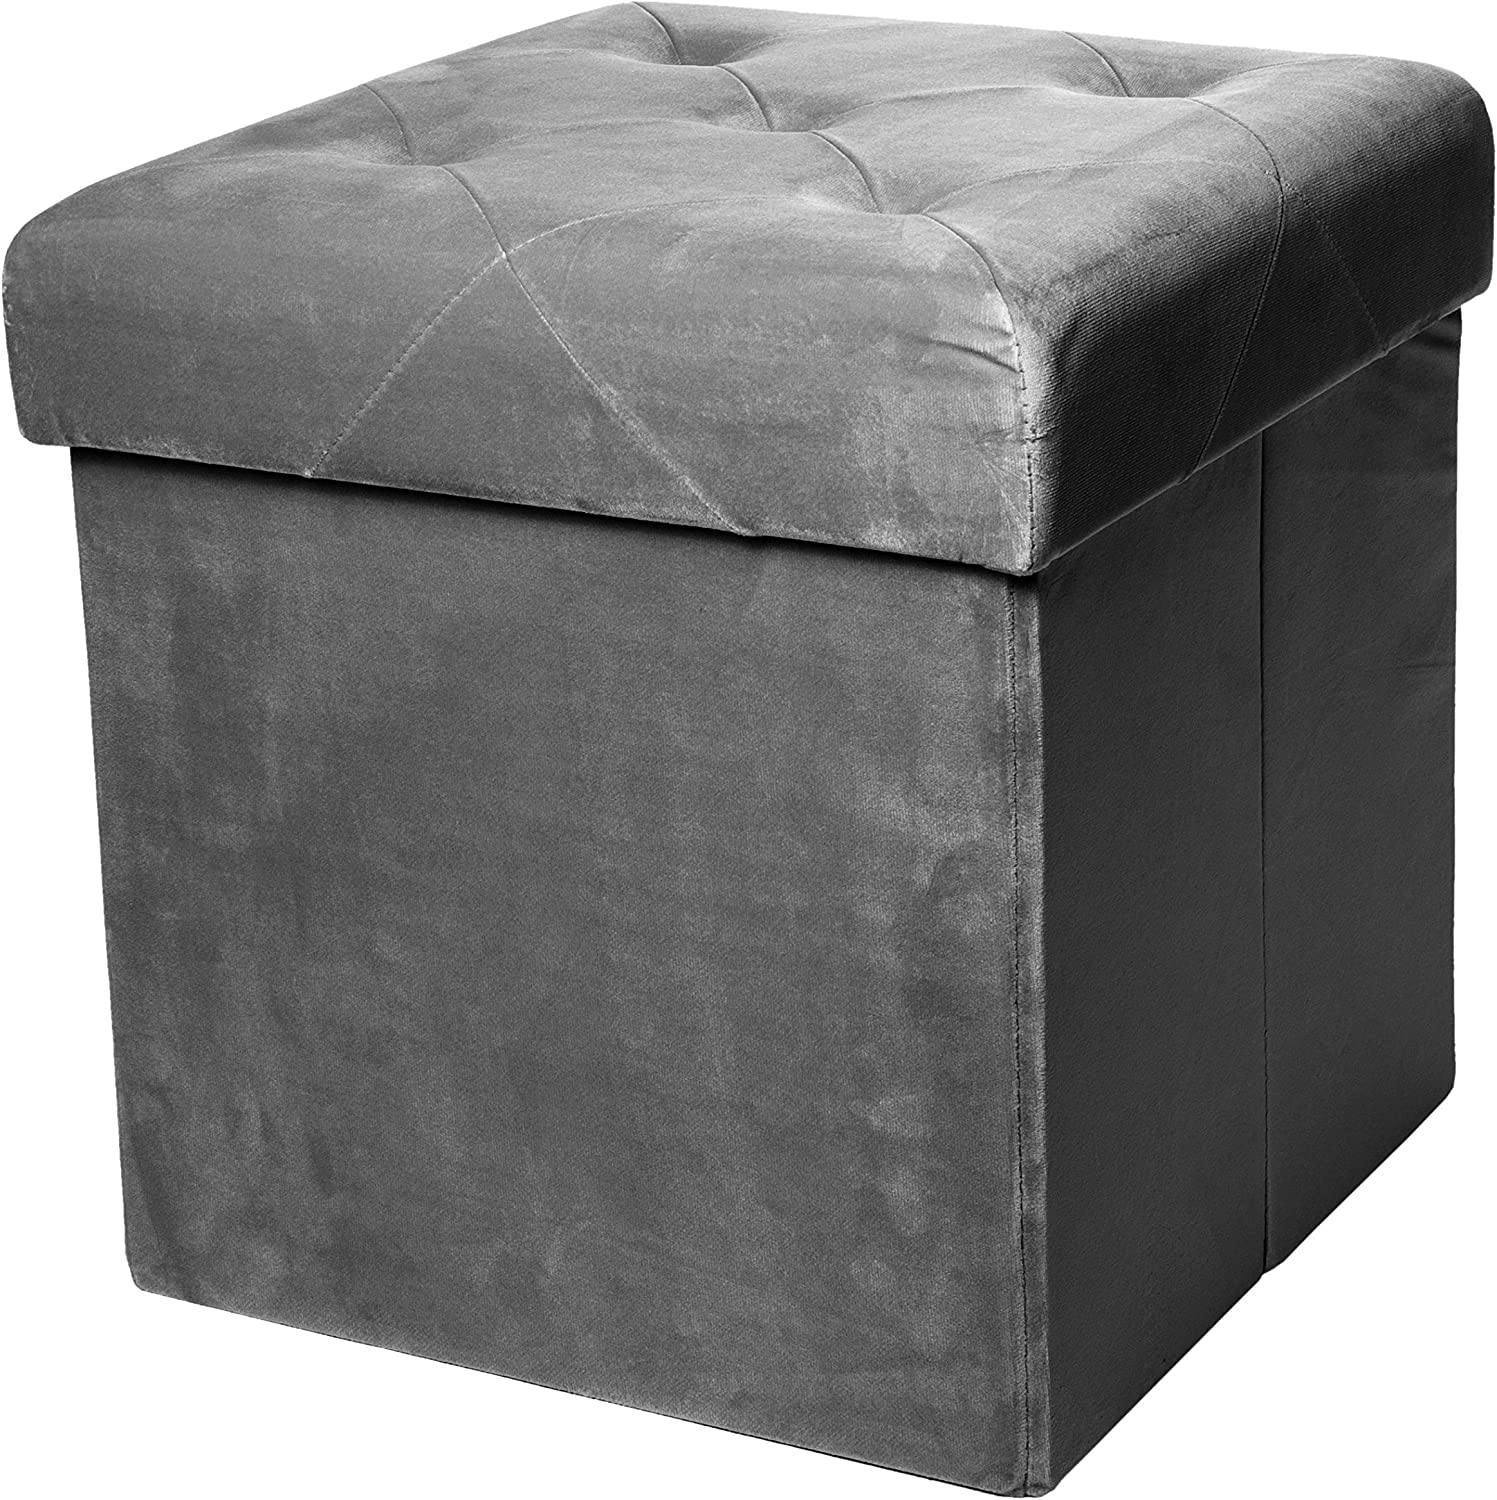 Red Co. Square Luxury Storage Seat with Upholste Ottoman Padded Industry National products No. 1